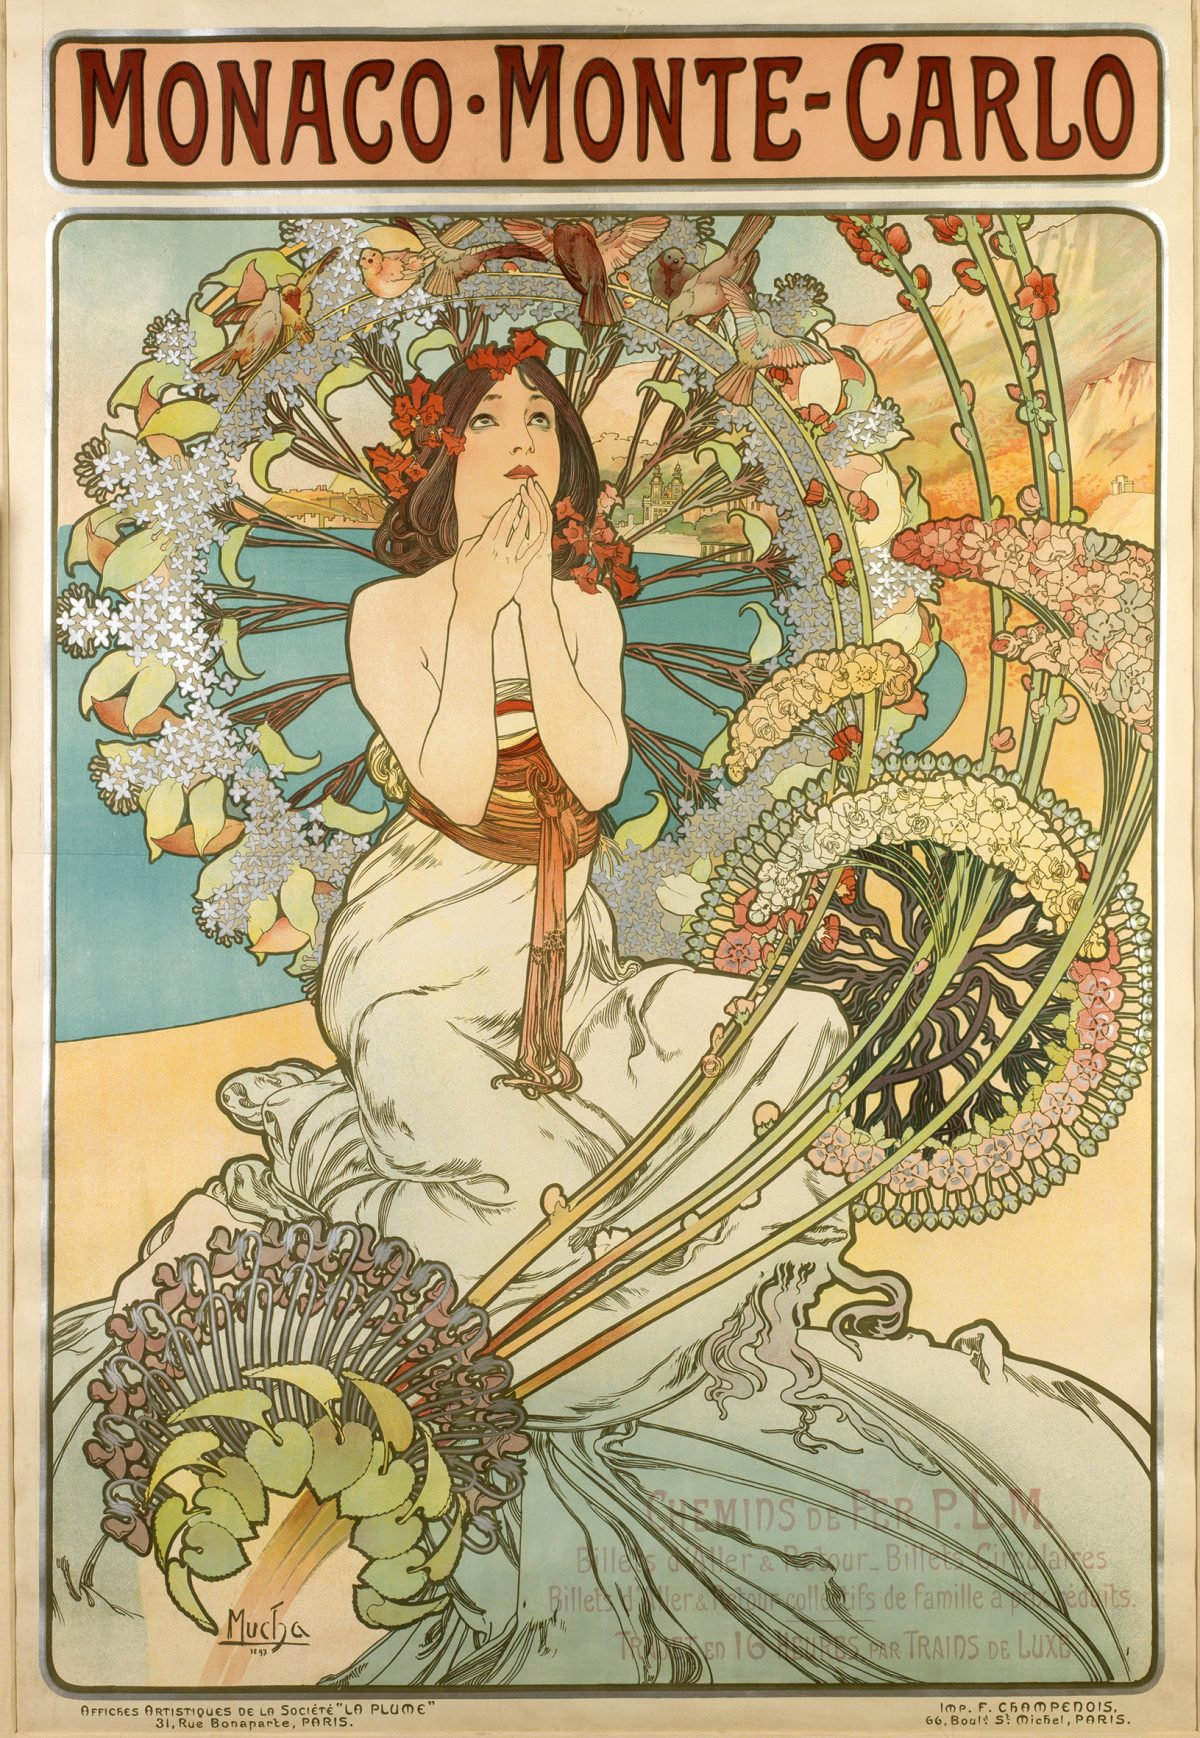 illustrational poster of a woman with many flowers surrounding her kneeling on a beach